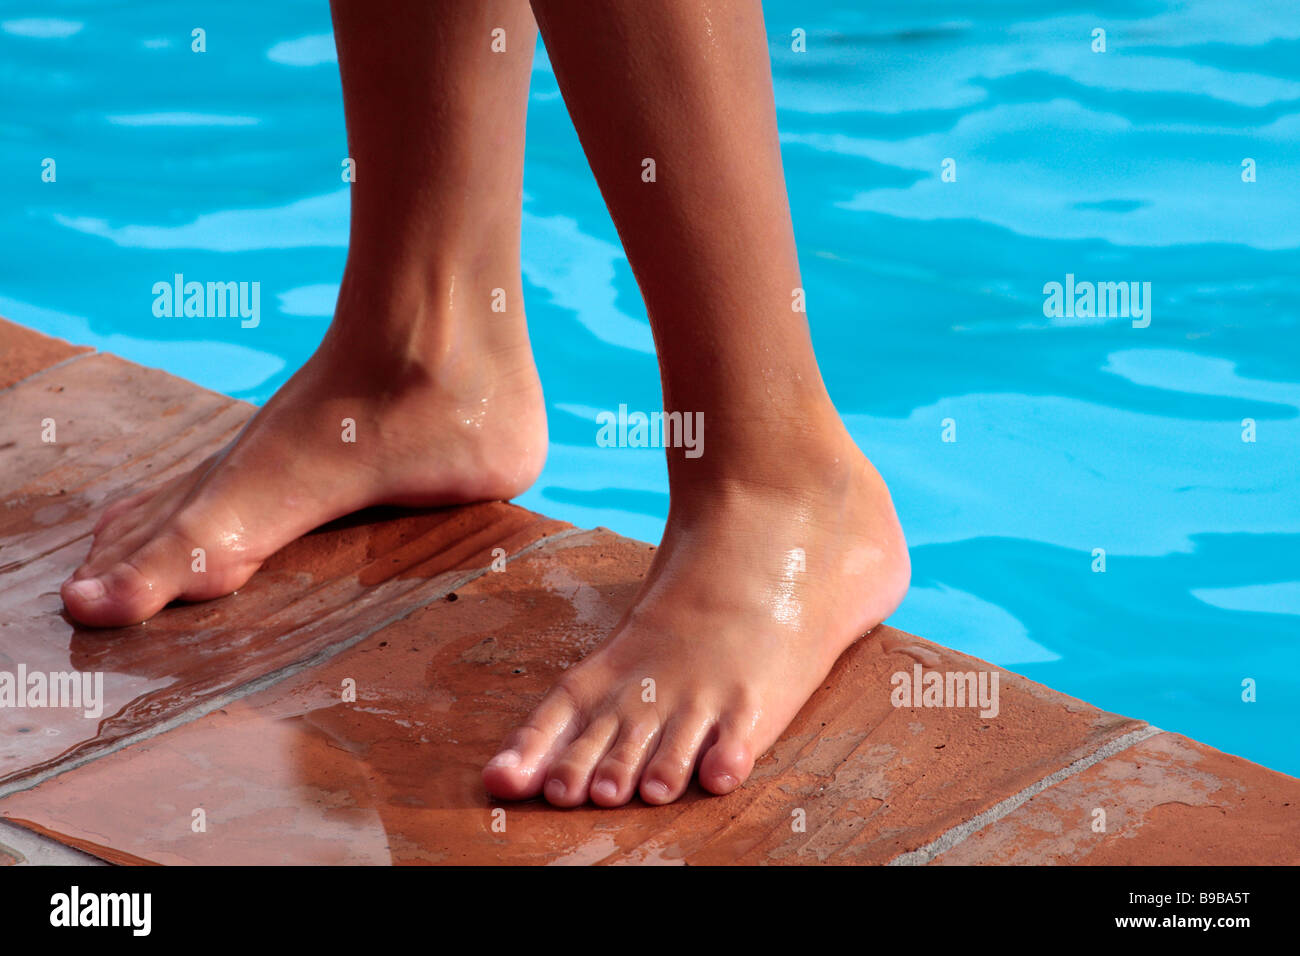 Boys Feet By A Swimming Pool Stock Image